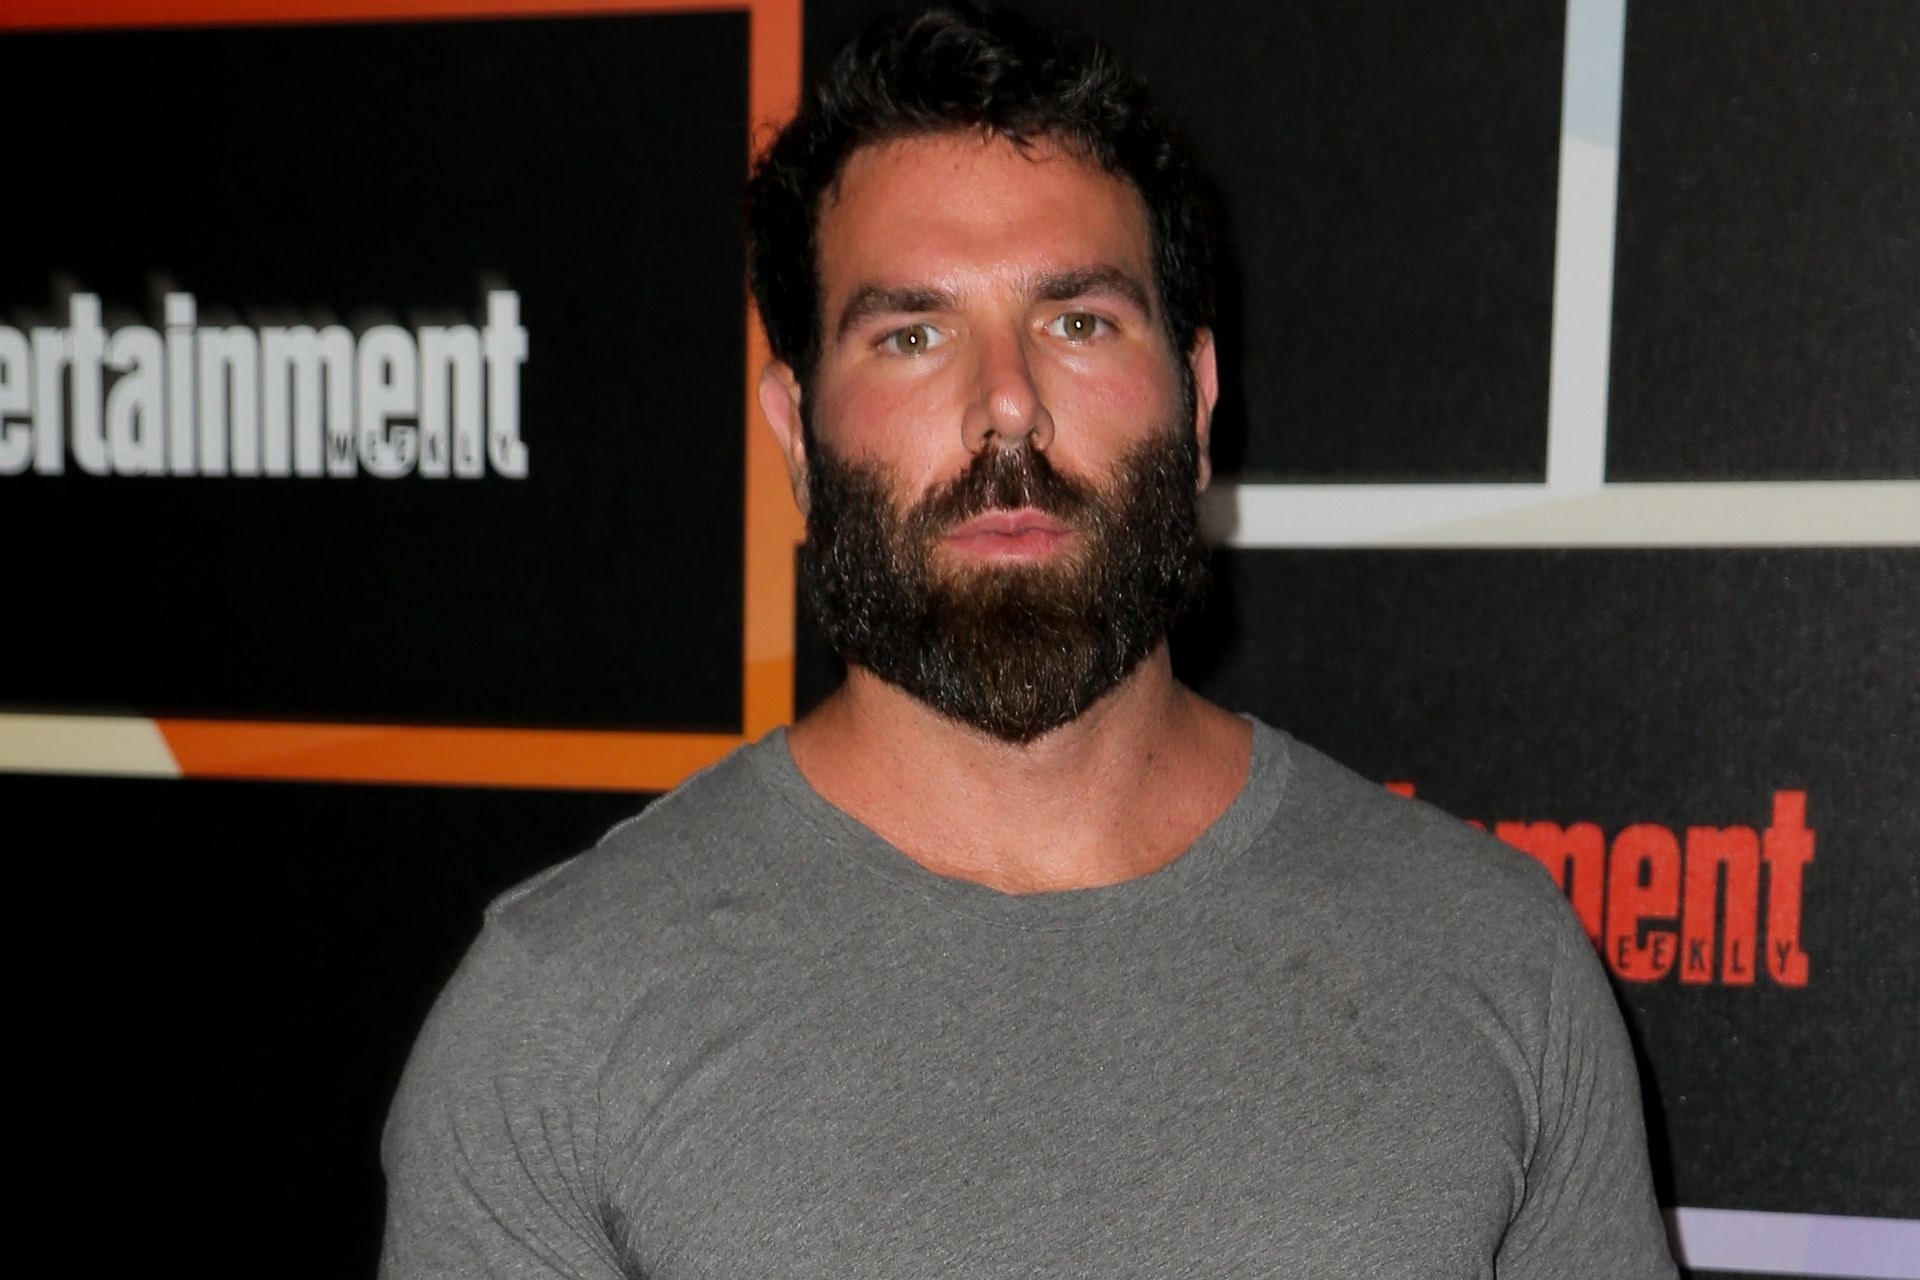 Dan Bilzerian to play at IPC Spartan Poker Big Daddy Casino Goa